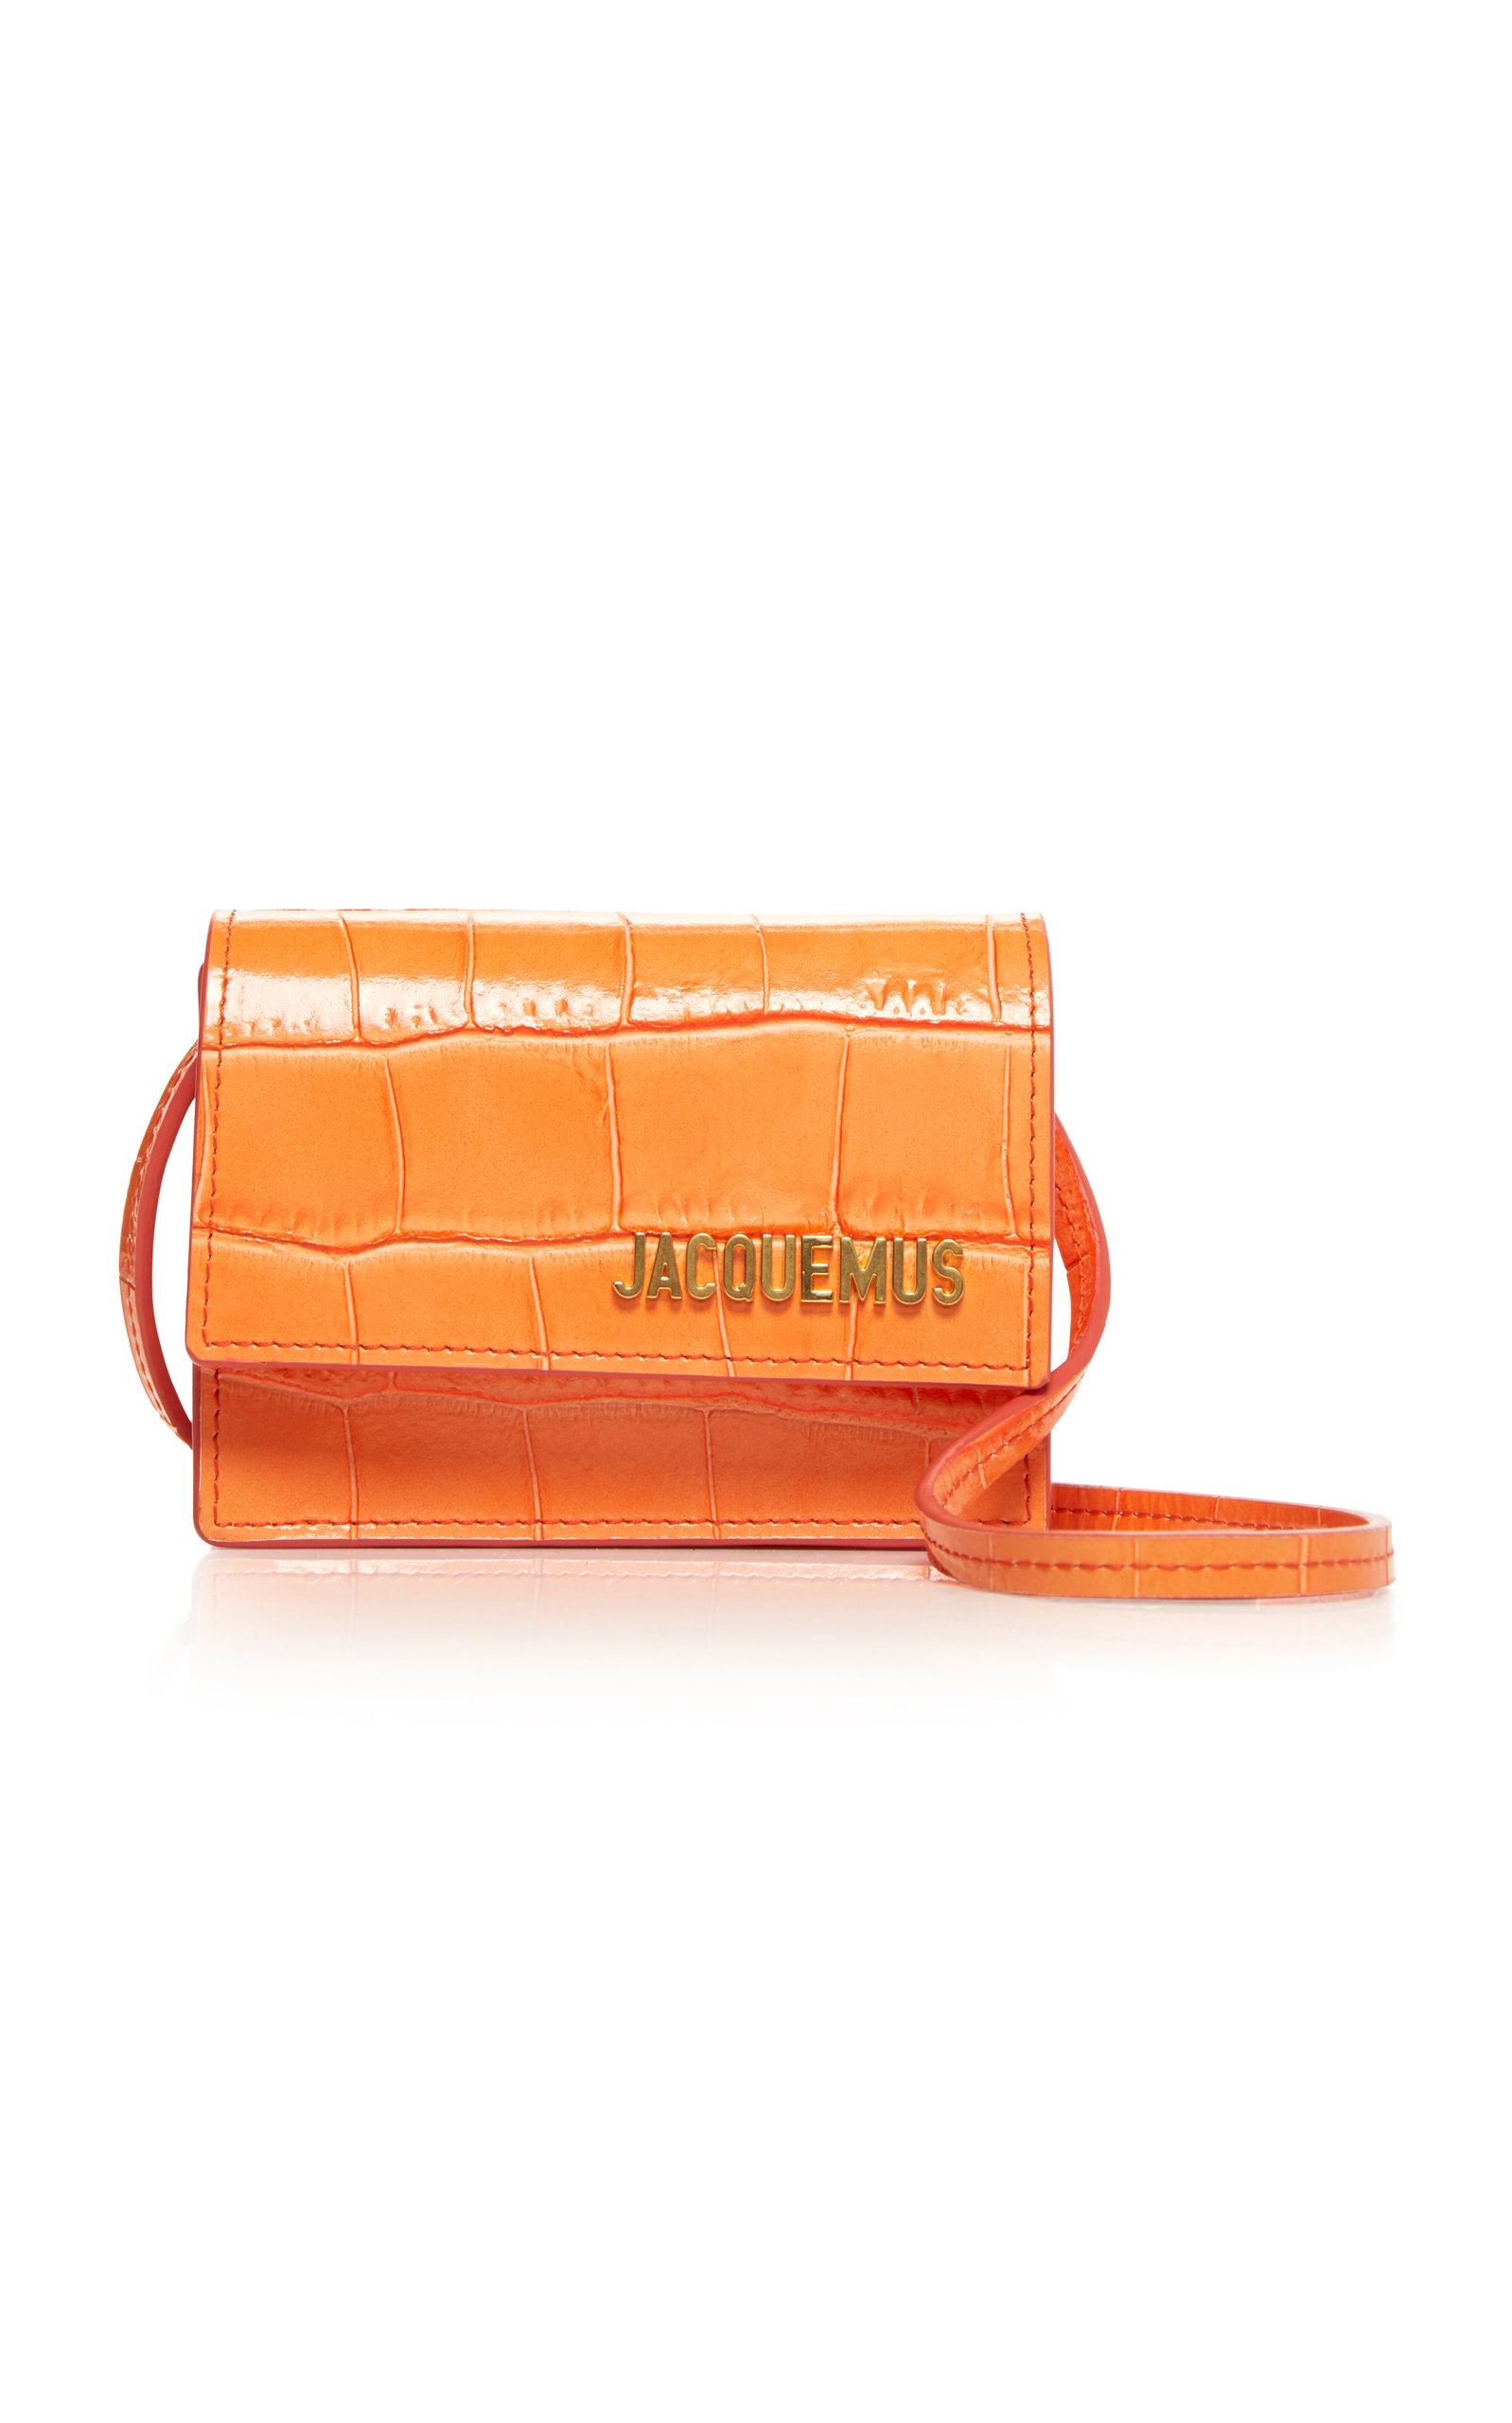 Le Bello Leather Mini Bag by Jacquemus, available on modaoperandi.com for $345 Olivia Culpo Bags Exact Product